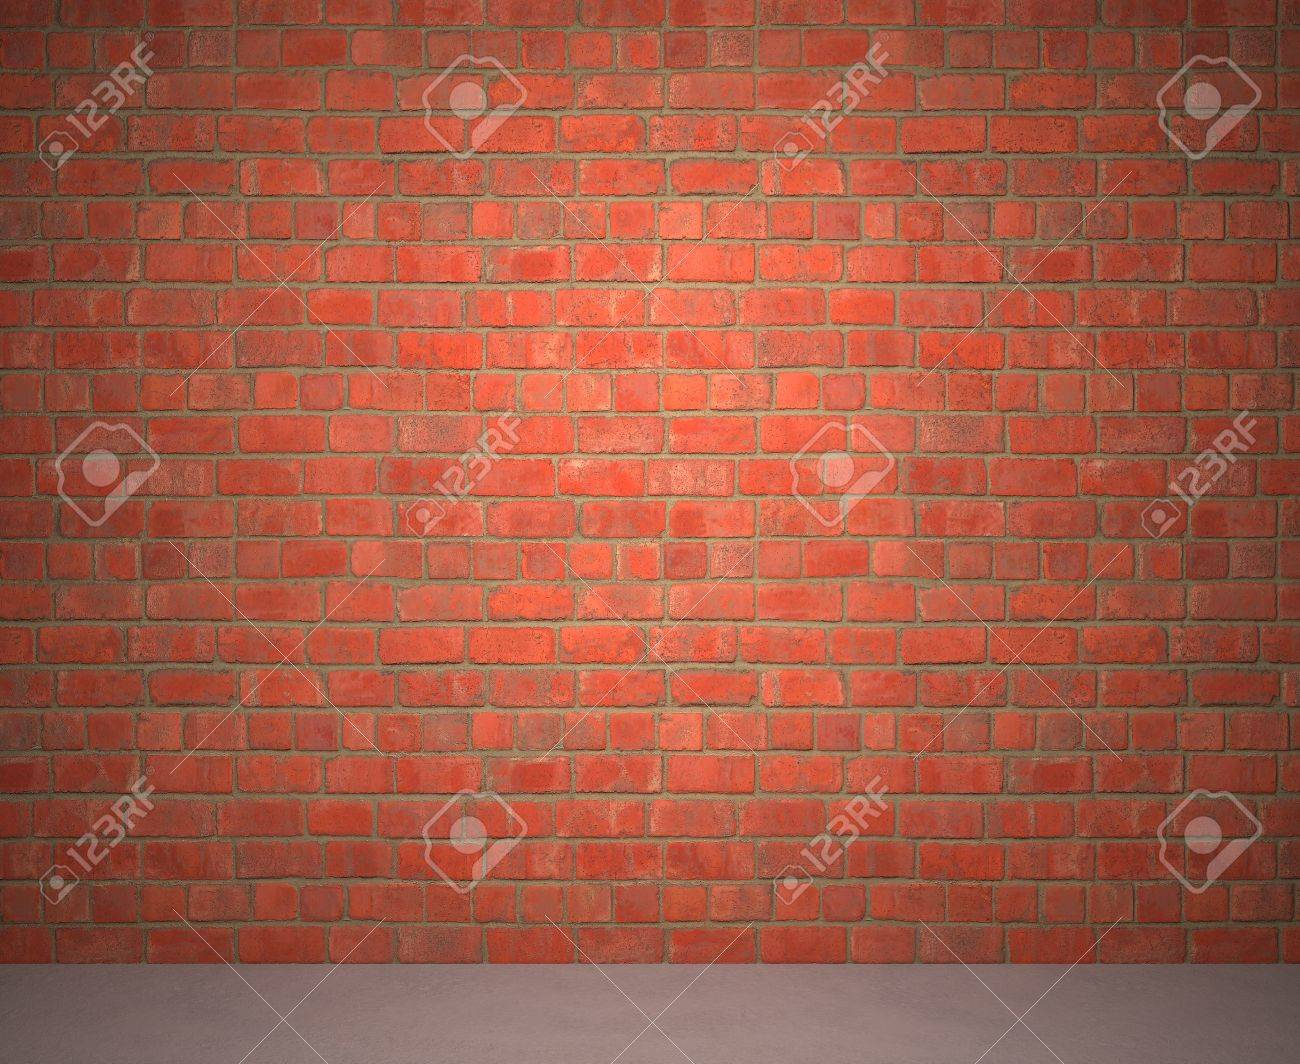 Exposed Brick Wall Exposed Brick Wall Next To A Sidewalk Stock Photo Picture And